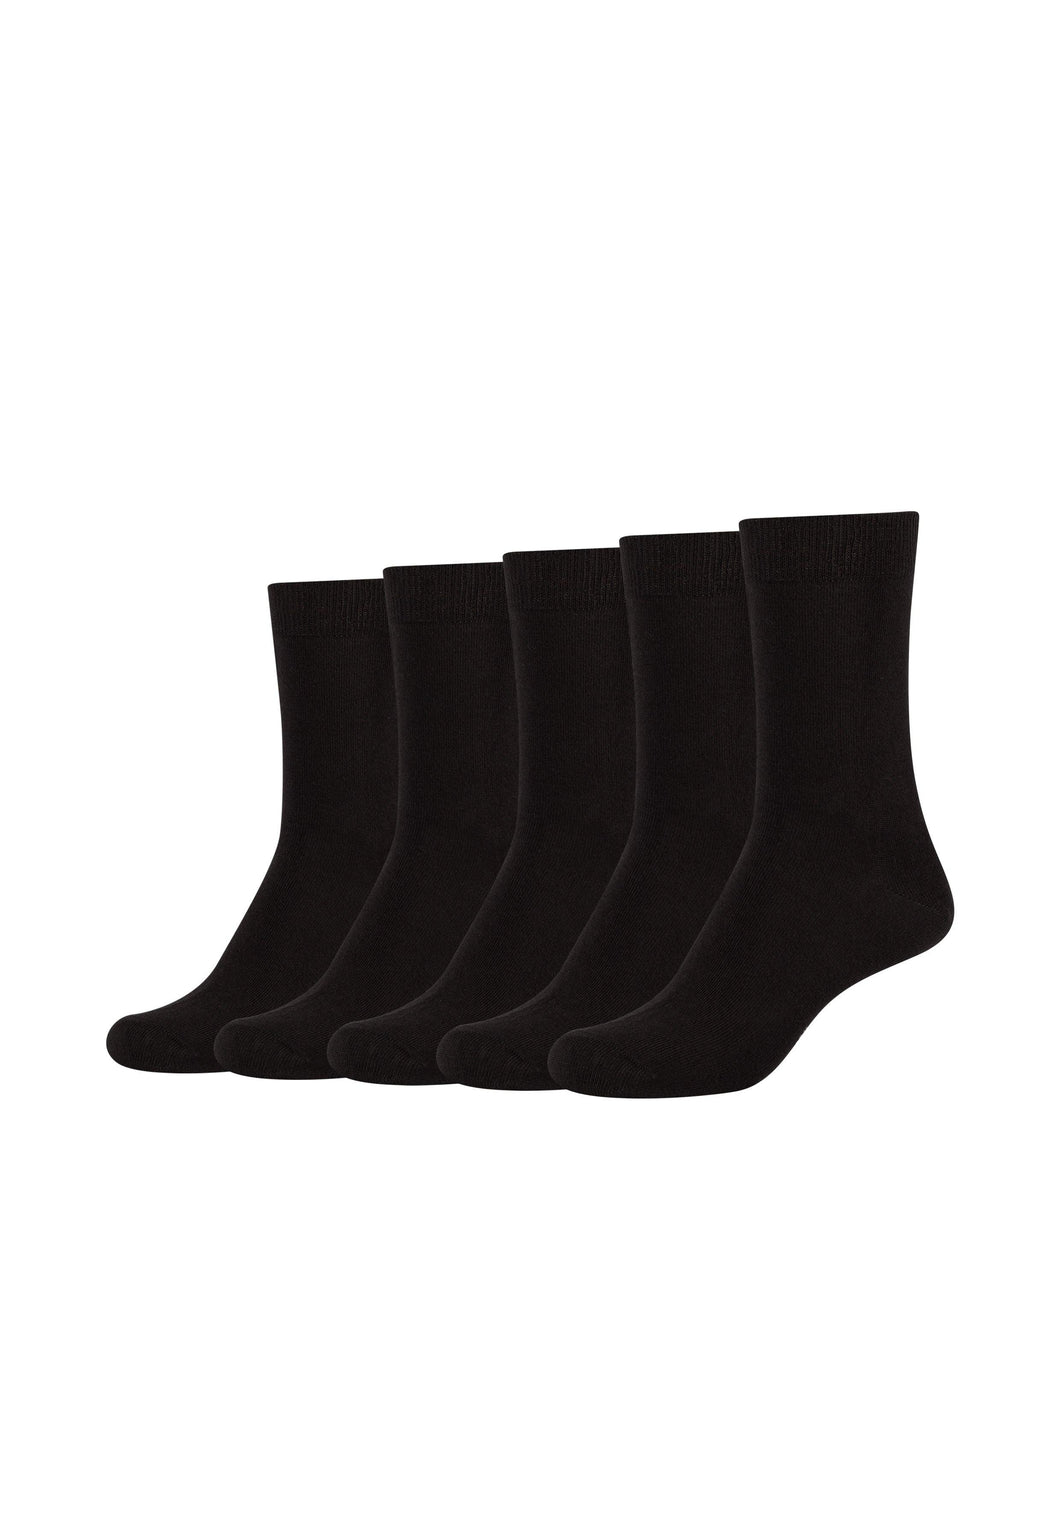 Socken Originals für Damen 5er Pack